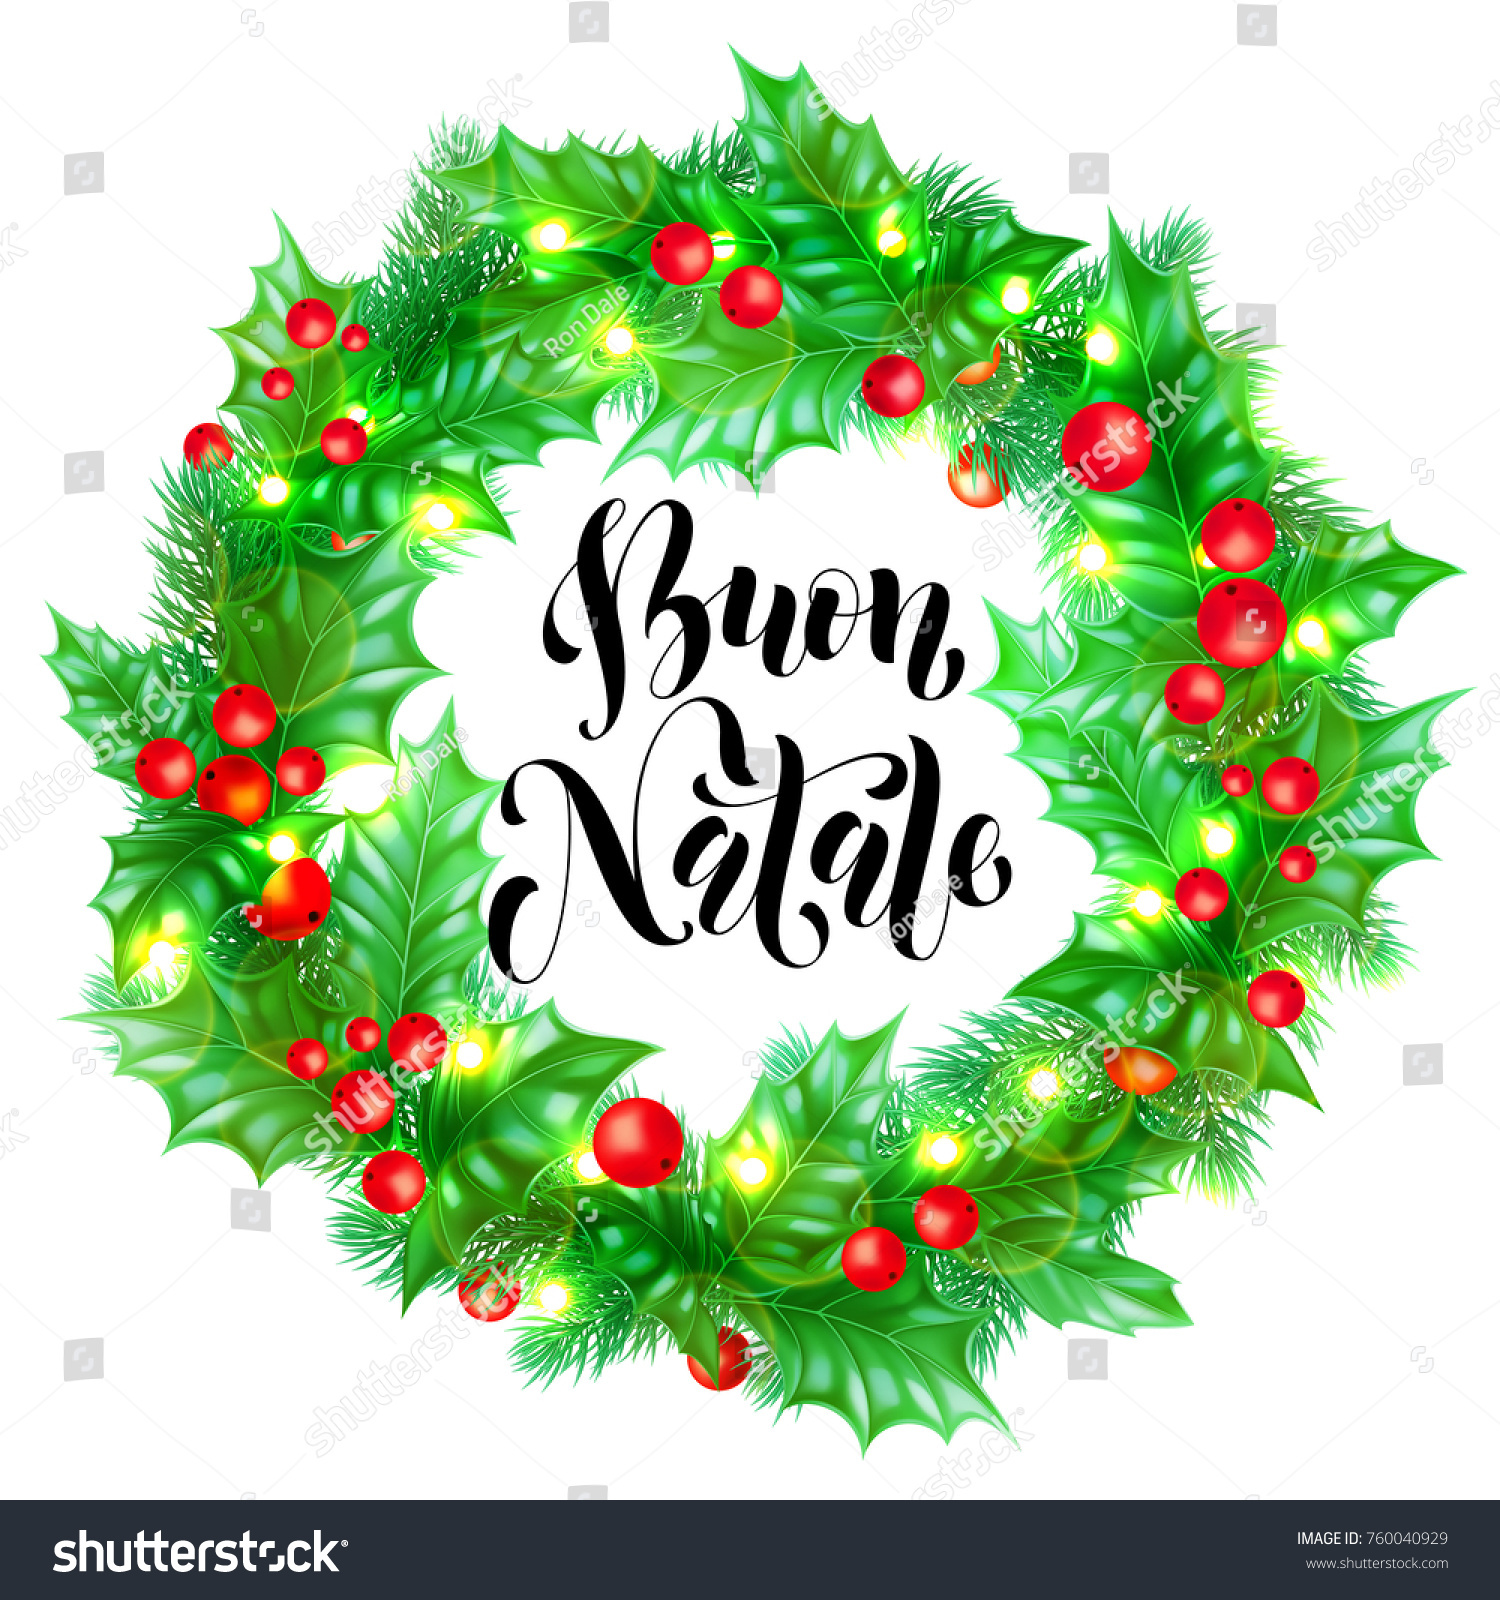 Buon natale italian merry christmas holiday stock vector royalty buon natale italian merry christmas holiday hand drawn calligraphy text for greeting card of wreath decoration m4hsunfo